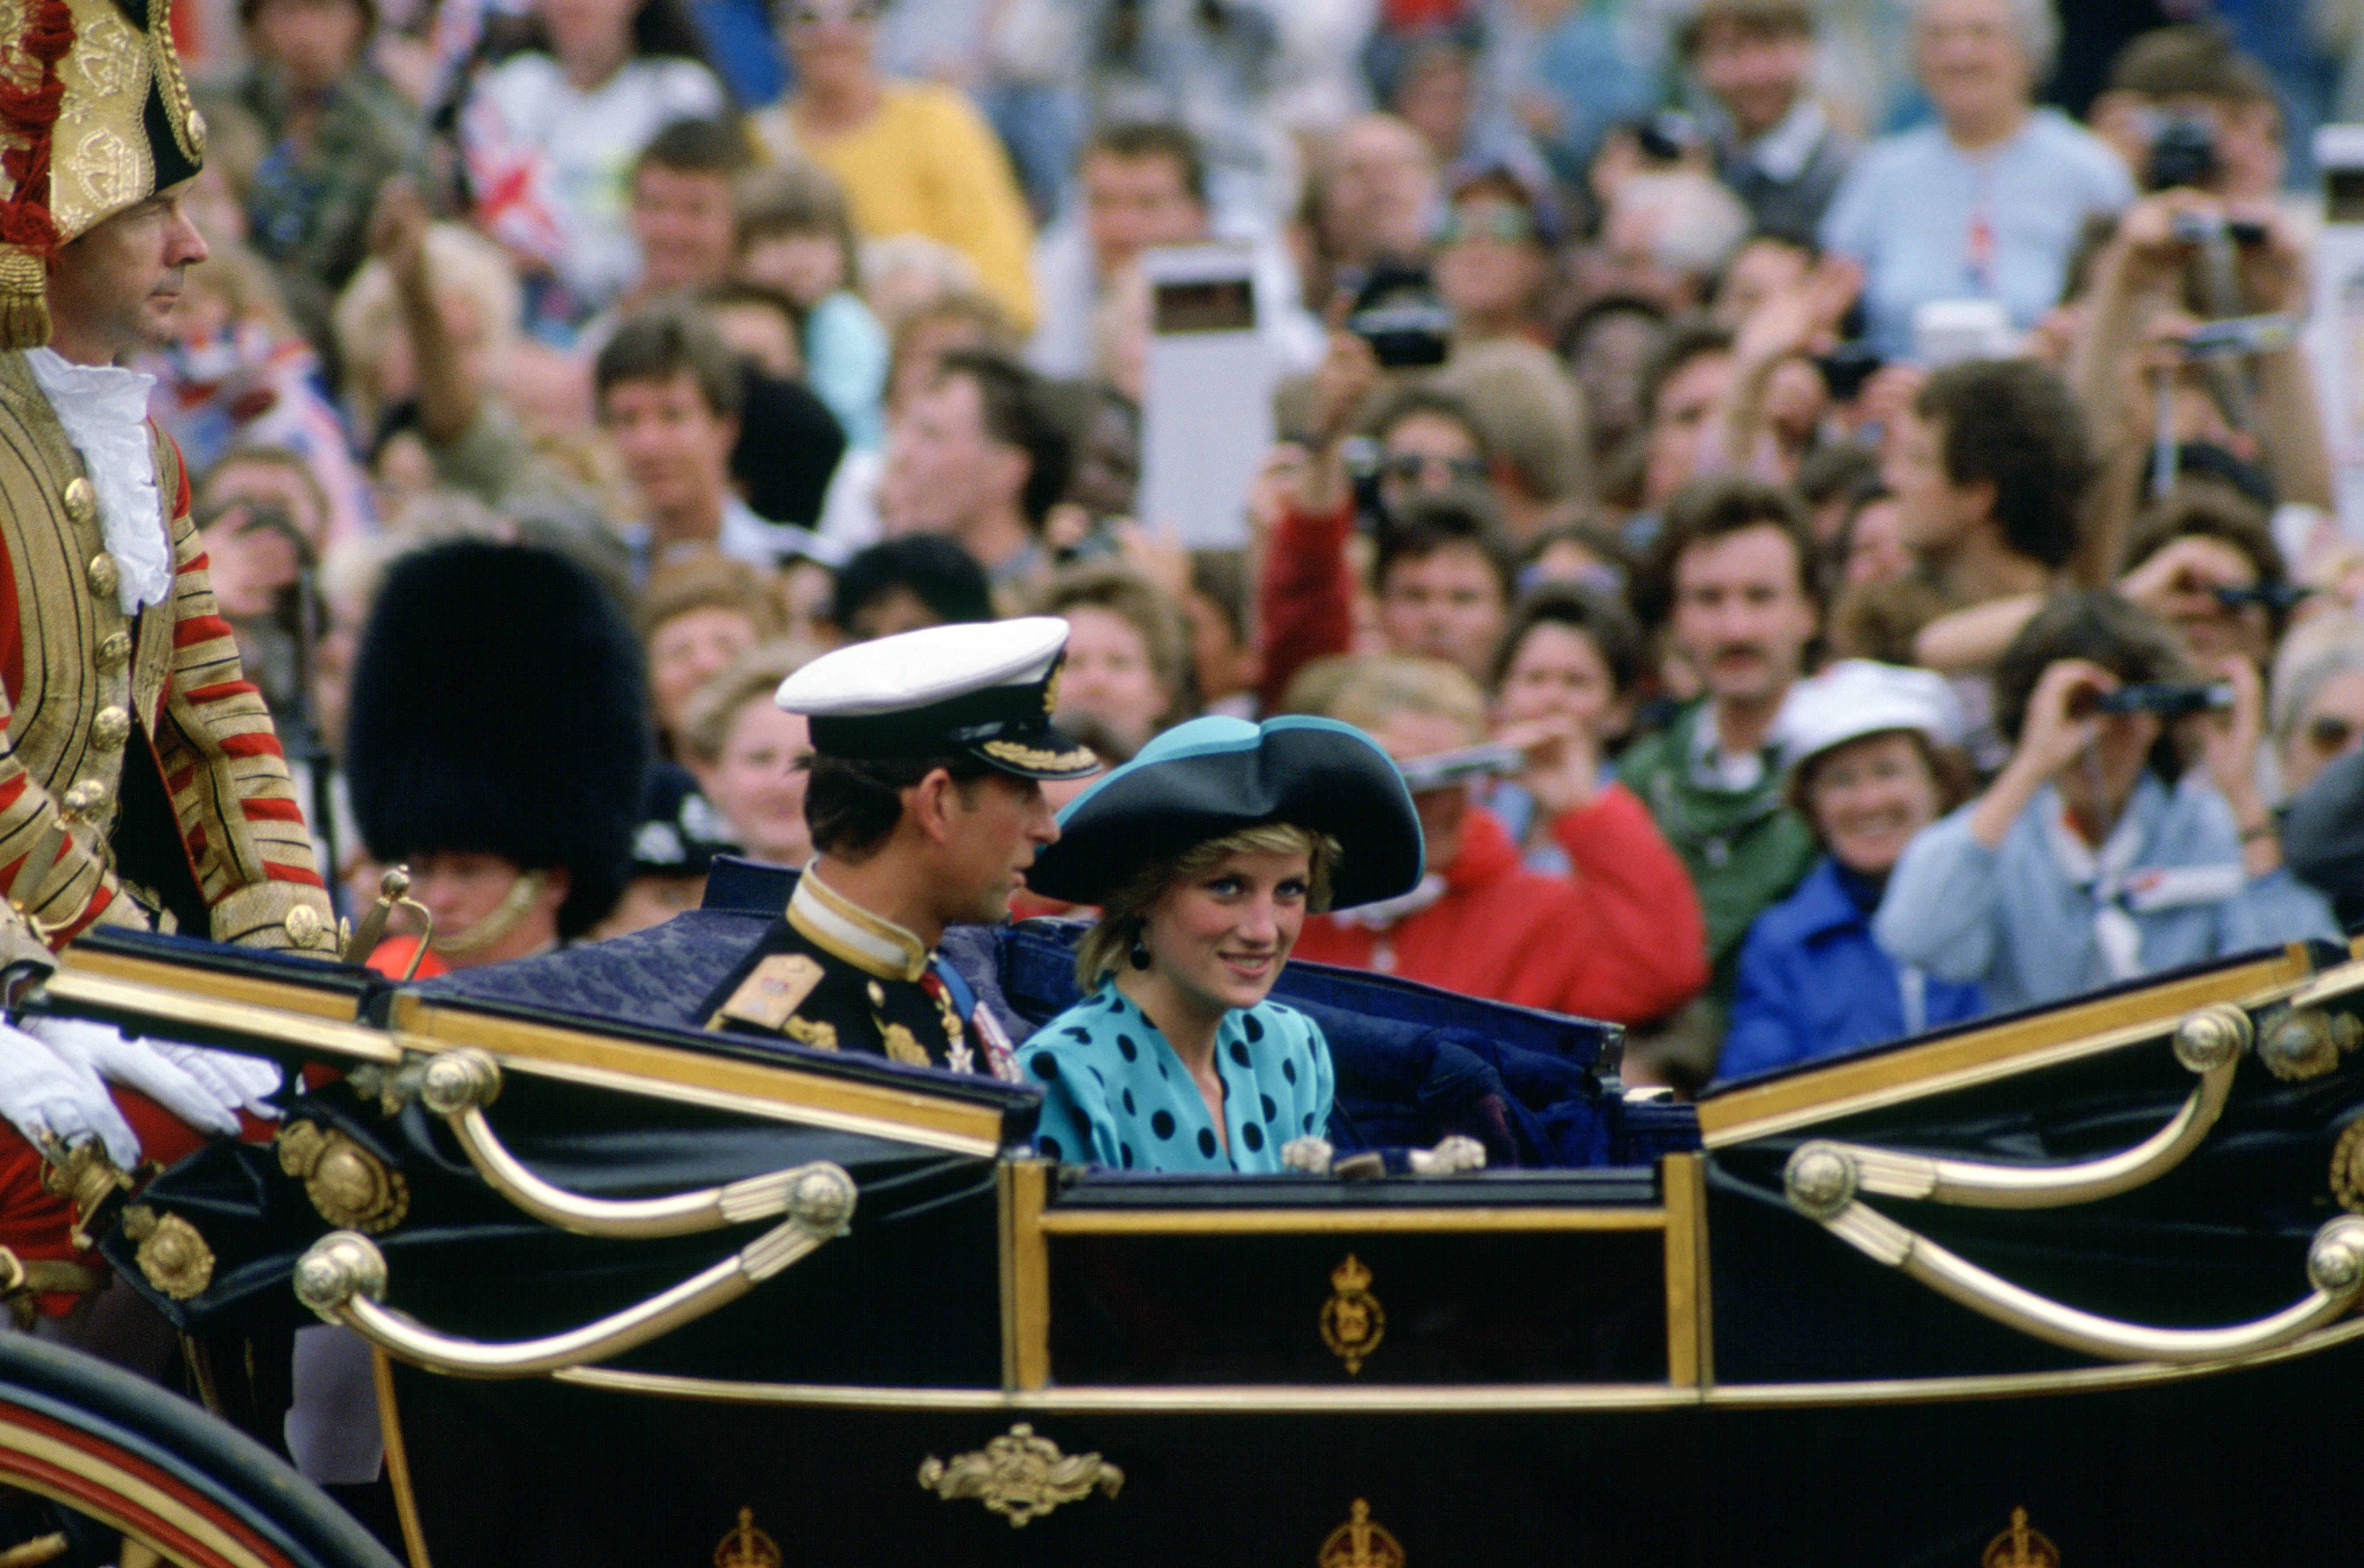 For the wedding of Prince Andrew and Sarah Ferguson, Princess Di wore a turquoise polka dotted suit and matching hat.